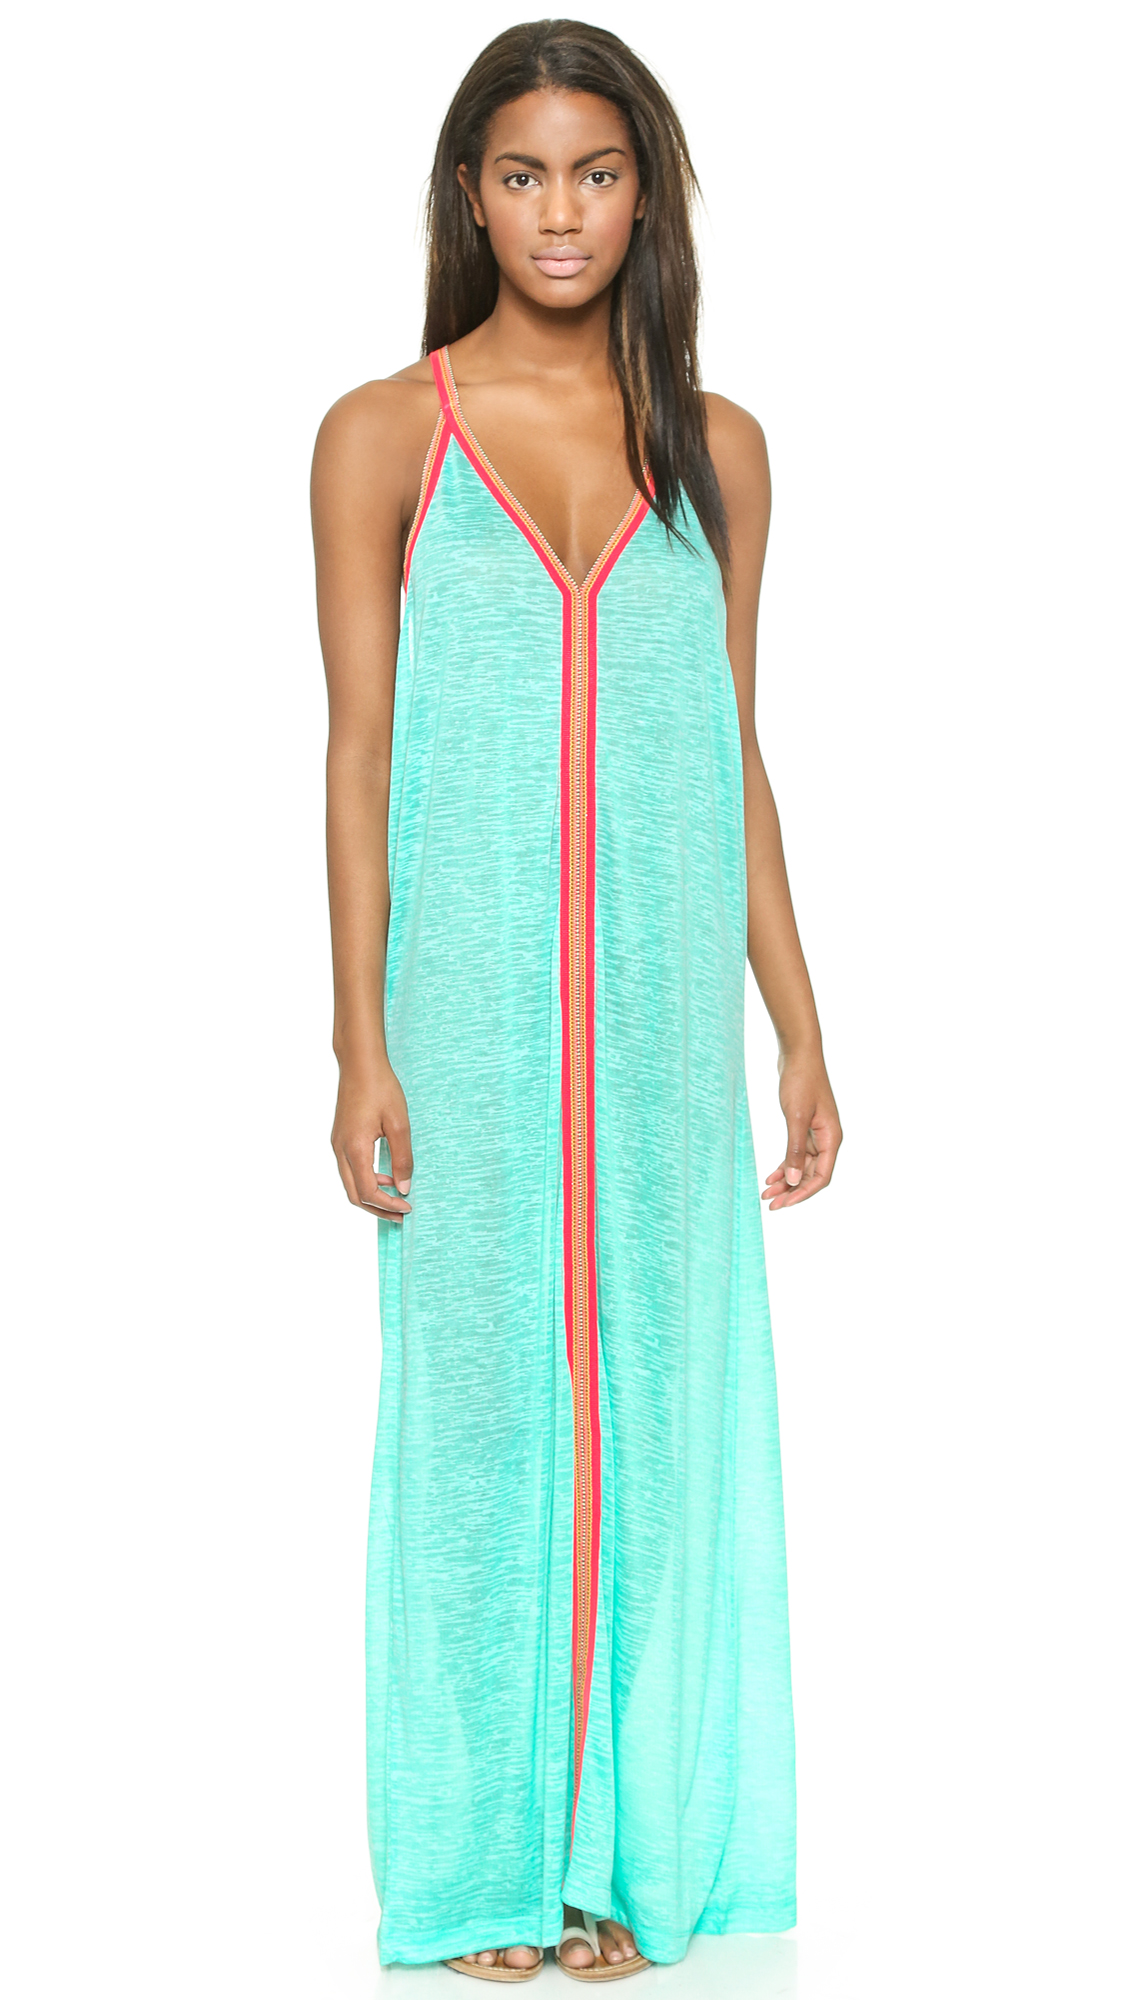 Pitusa Sun Maxi Dress - Mint